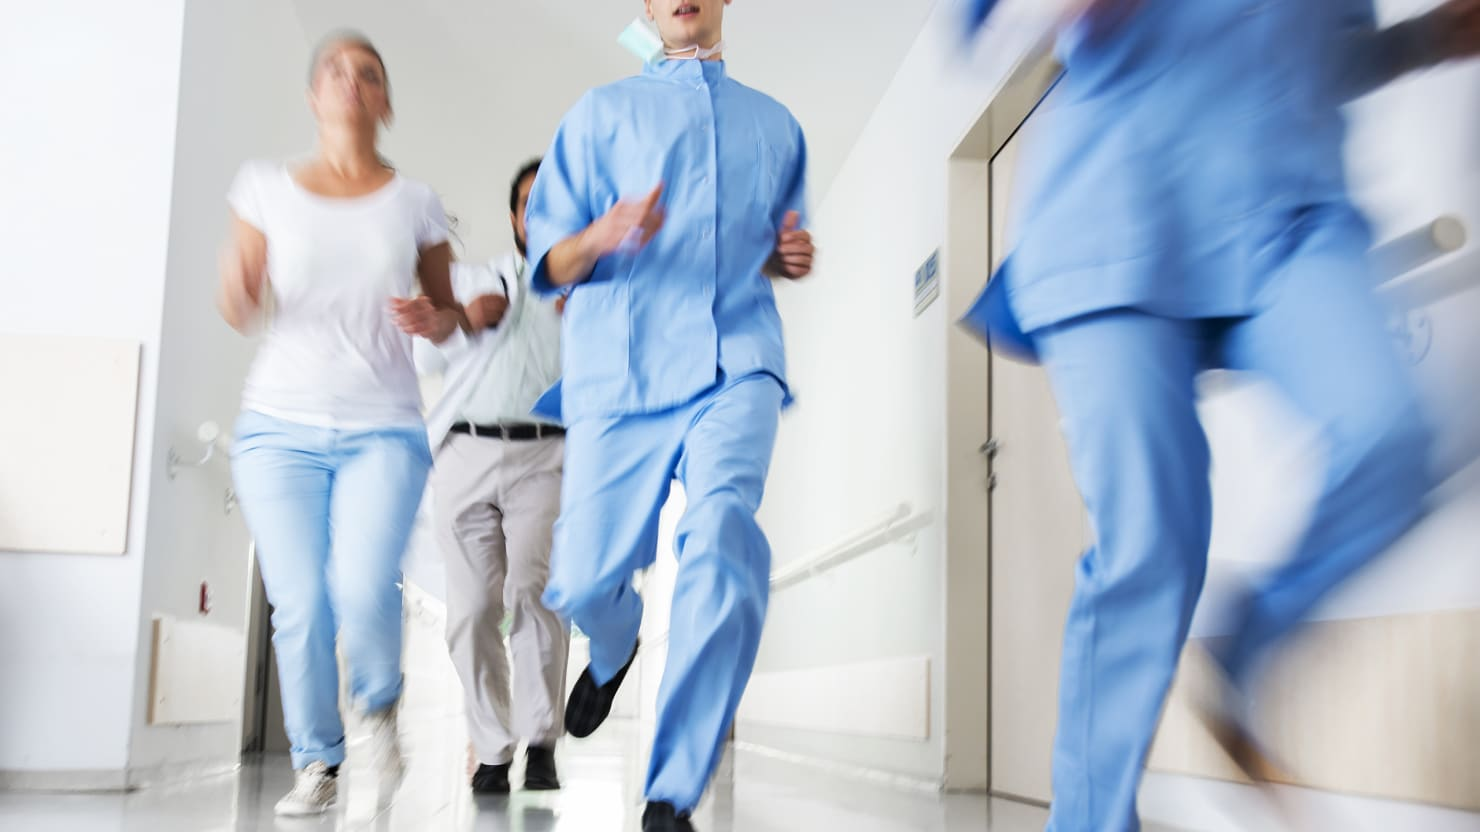 The Horror of Working in a Hospital